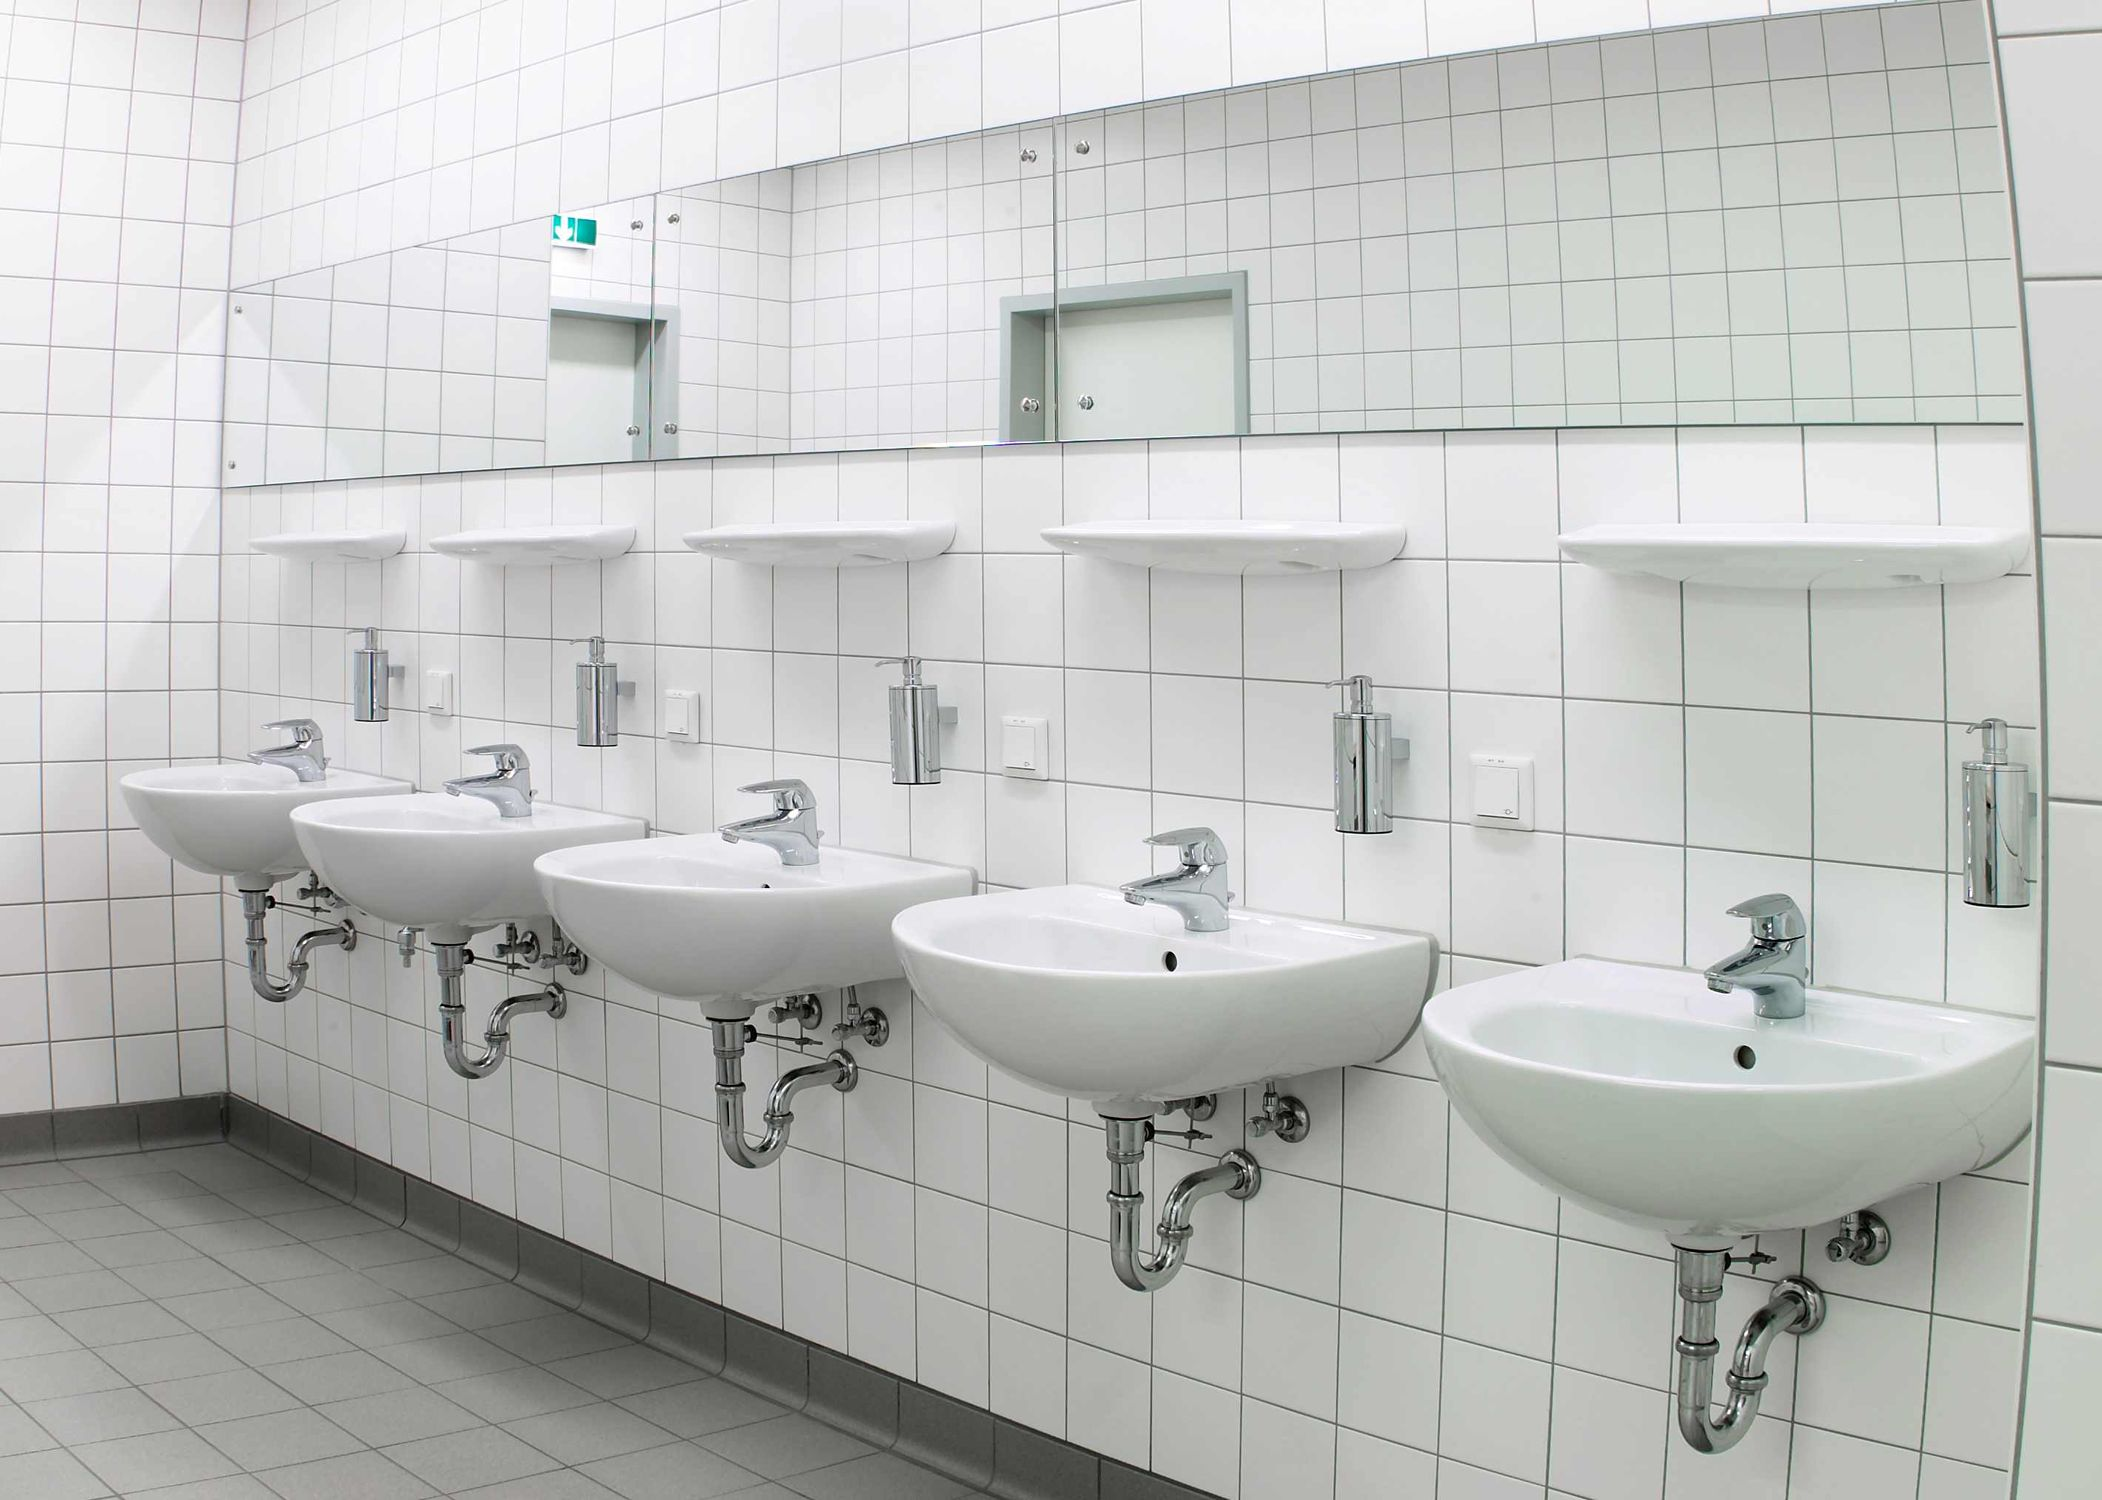 Commercial - Commercial bathrooms designs ...